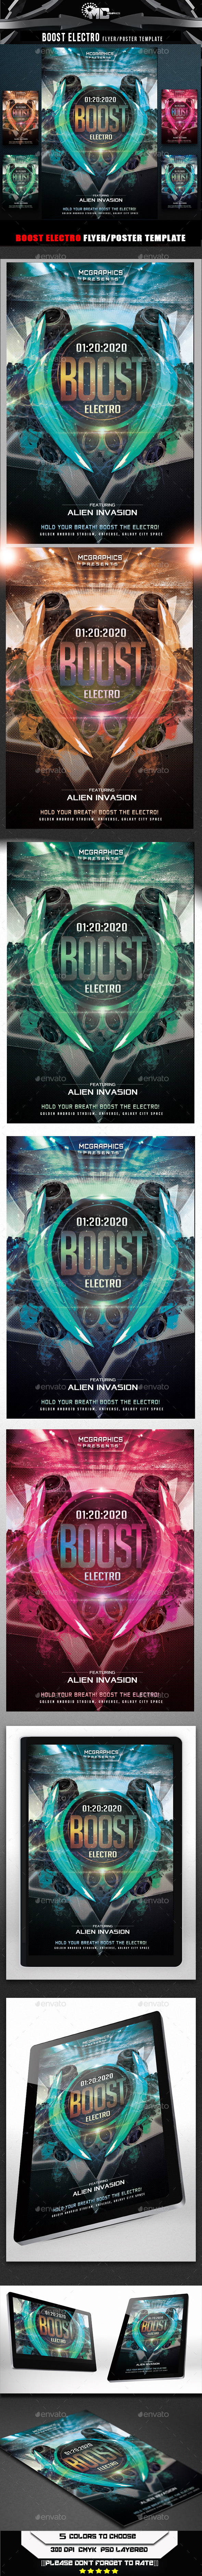 Boost Electro Flyer Template - Flyers Print Templates